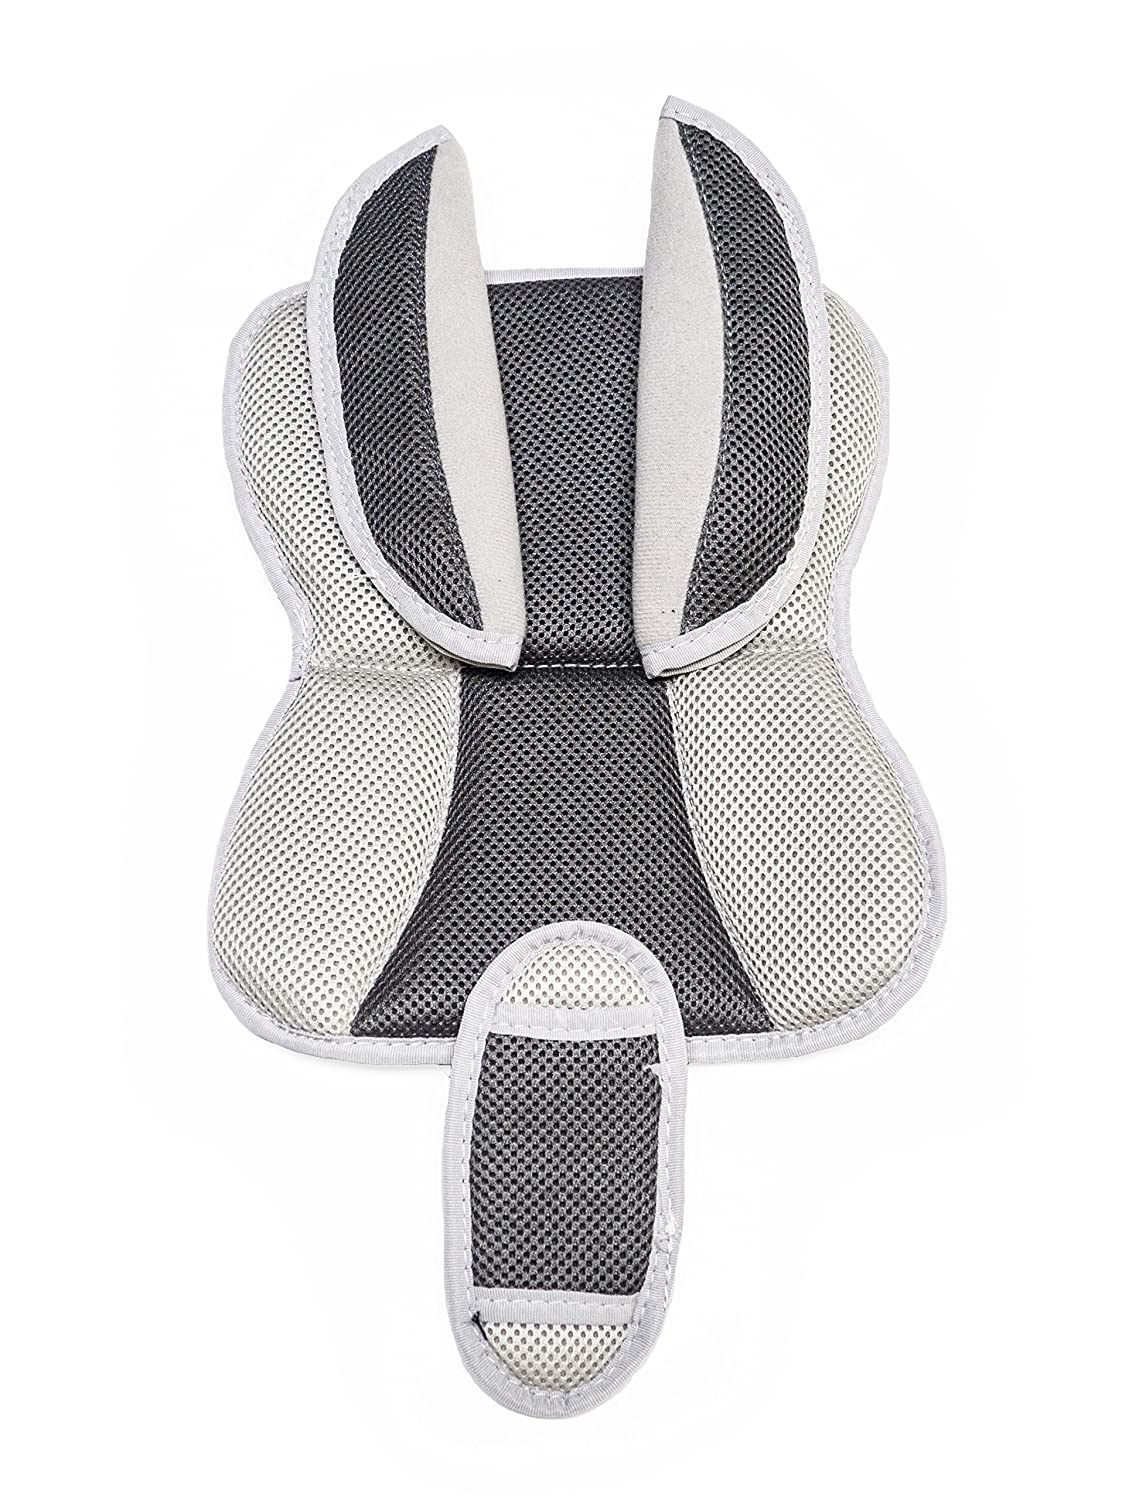 Burley Design Deluxe Trailer Seat Pads, Grey, One Size 950107